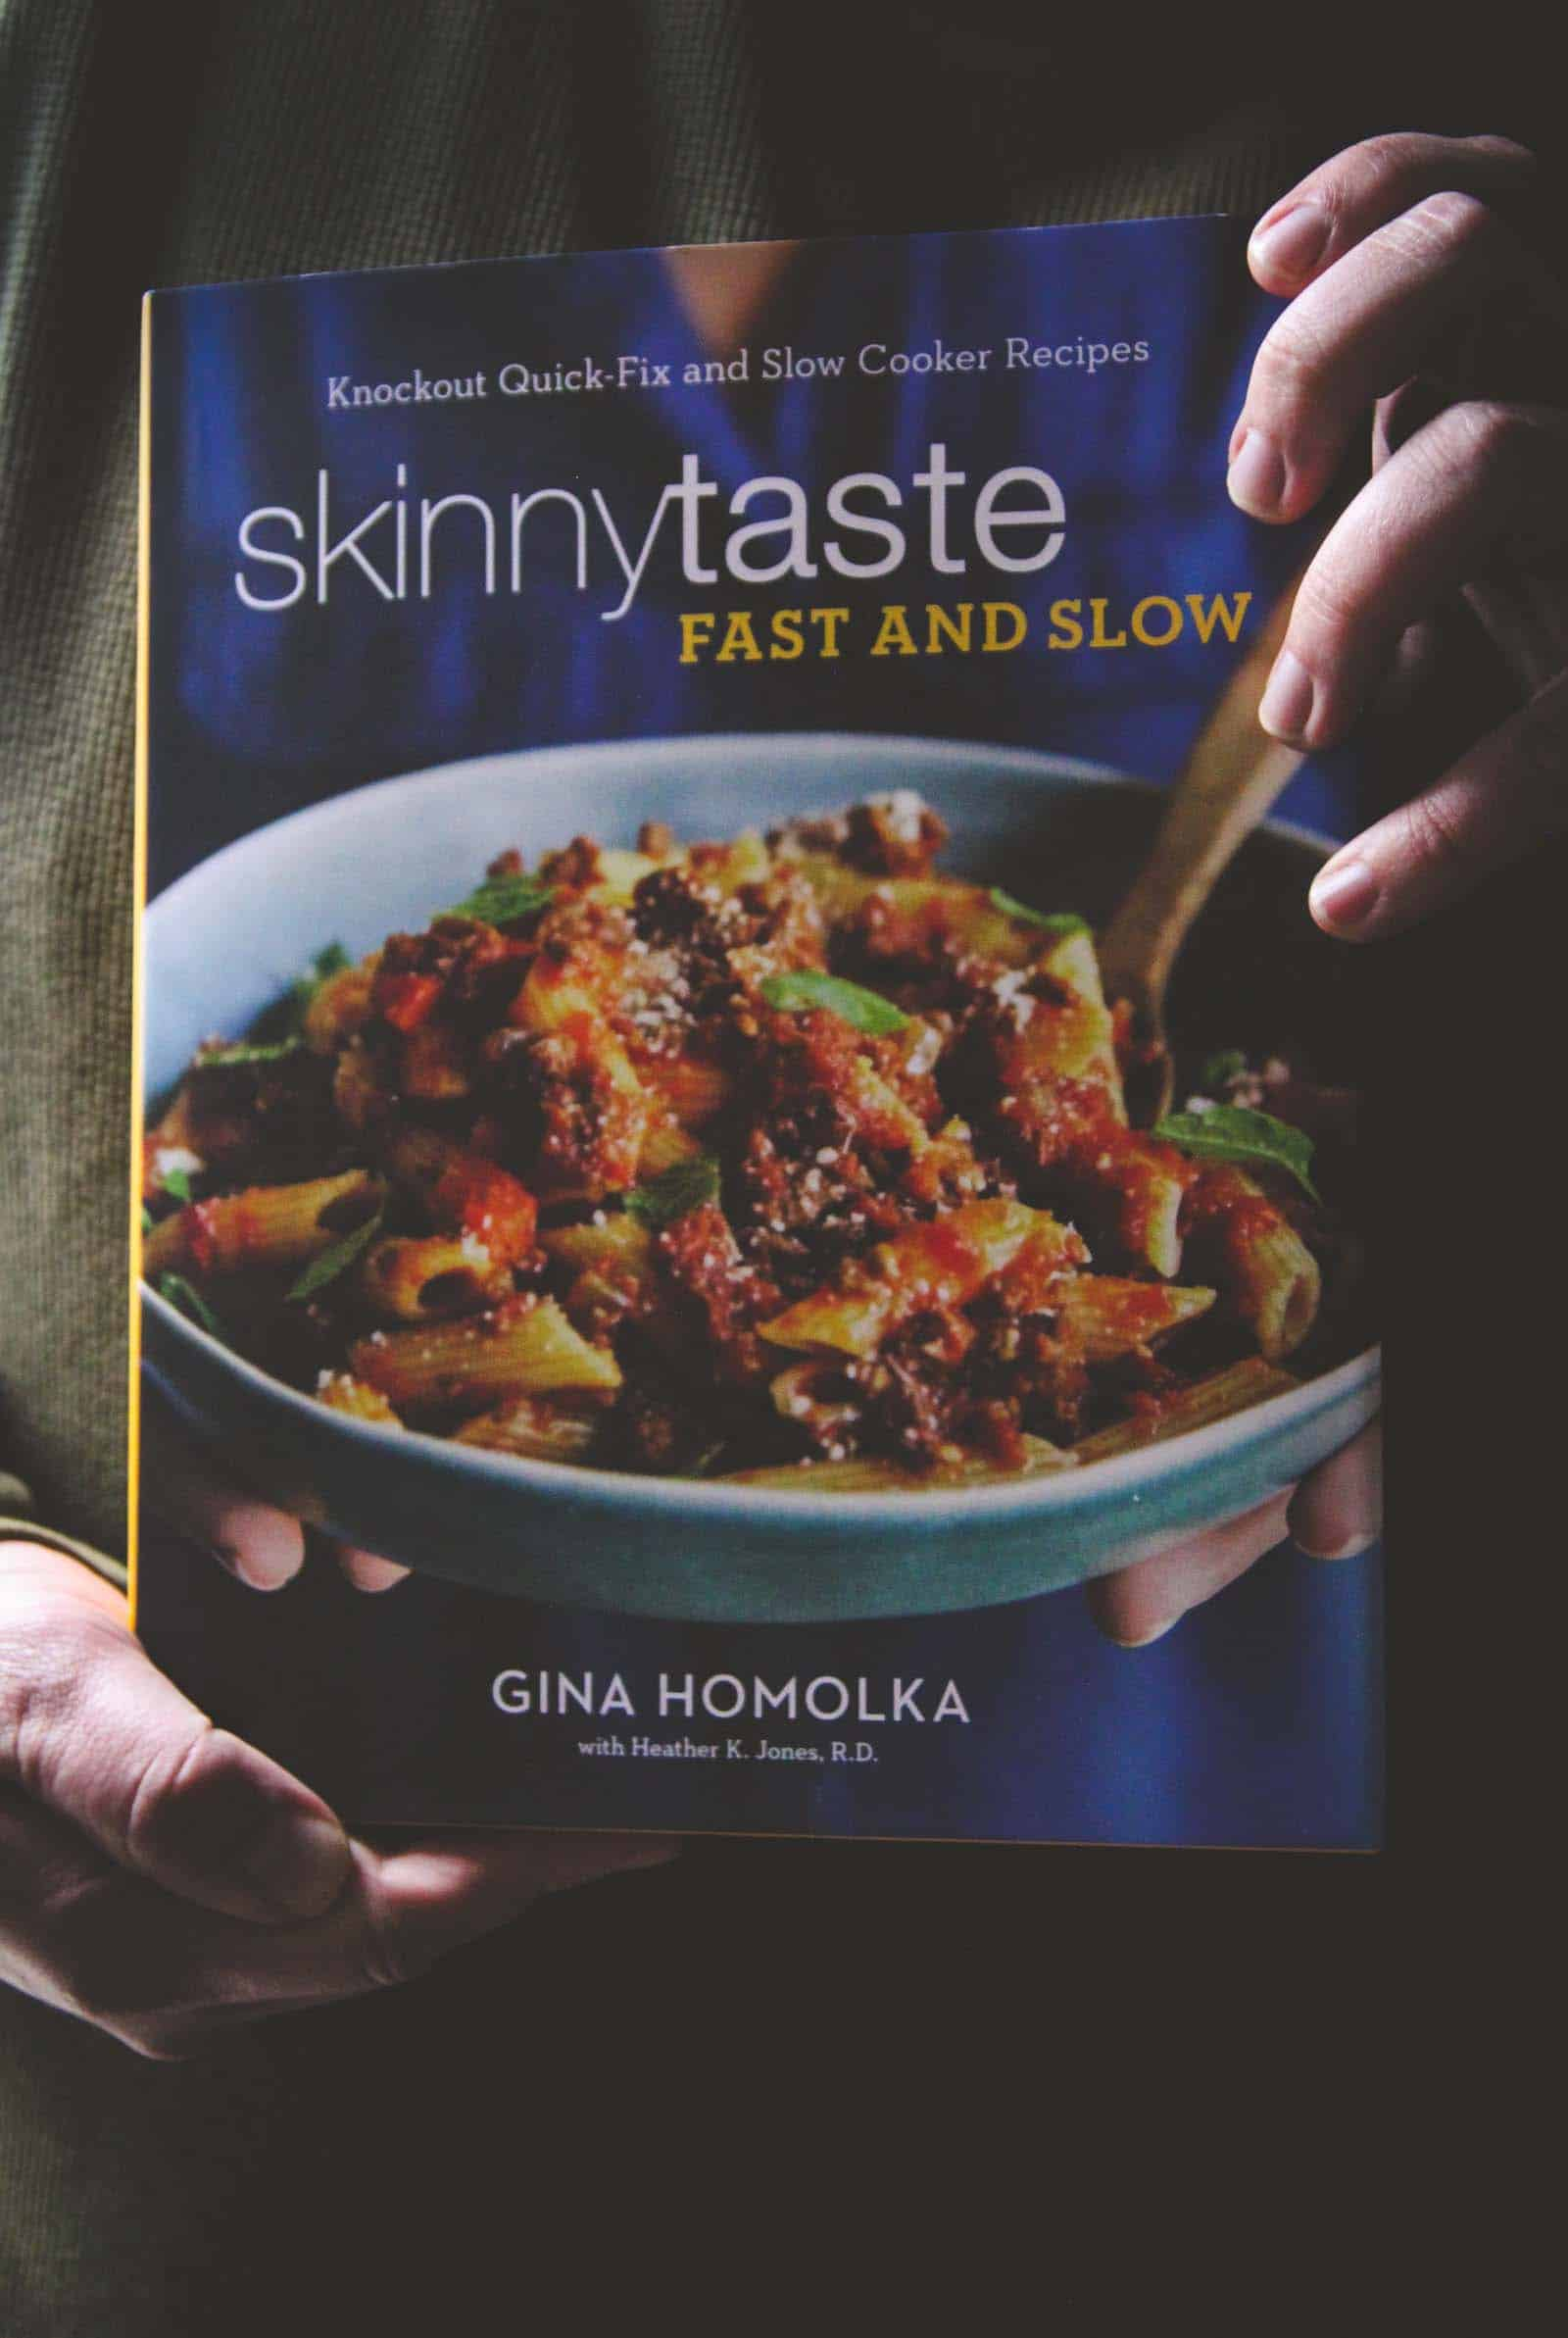 Skinnytaste Fast and Slow cookbook is amazing